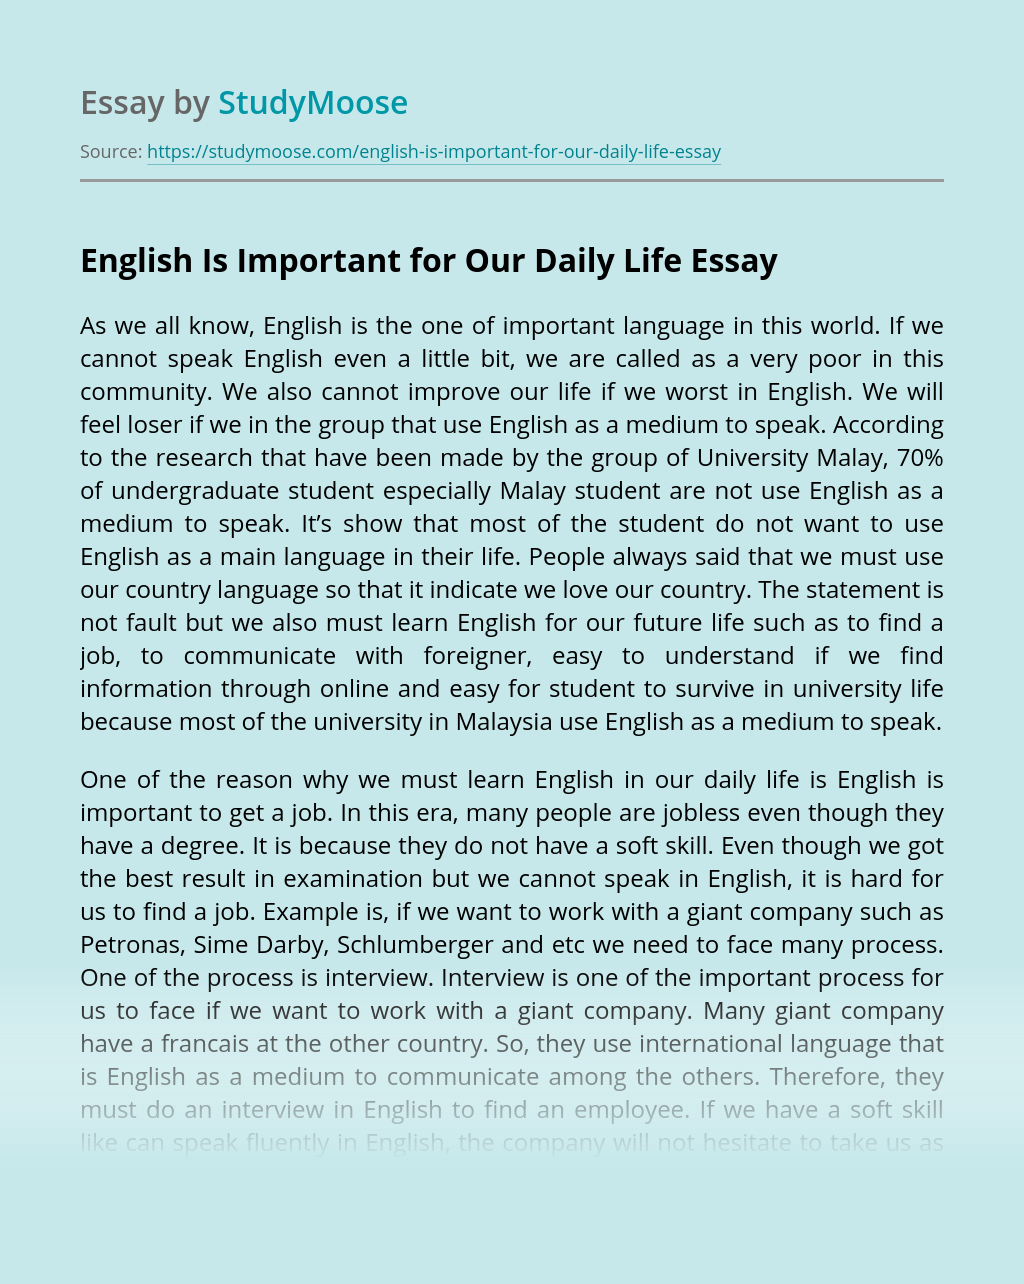 English Is Important for Our Daily Life